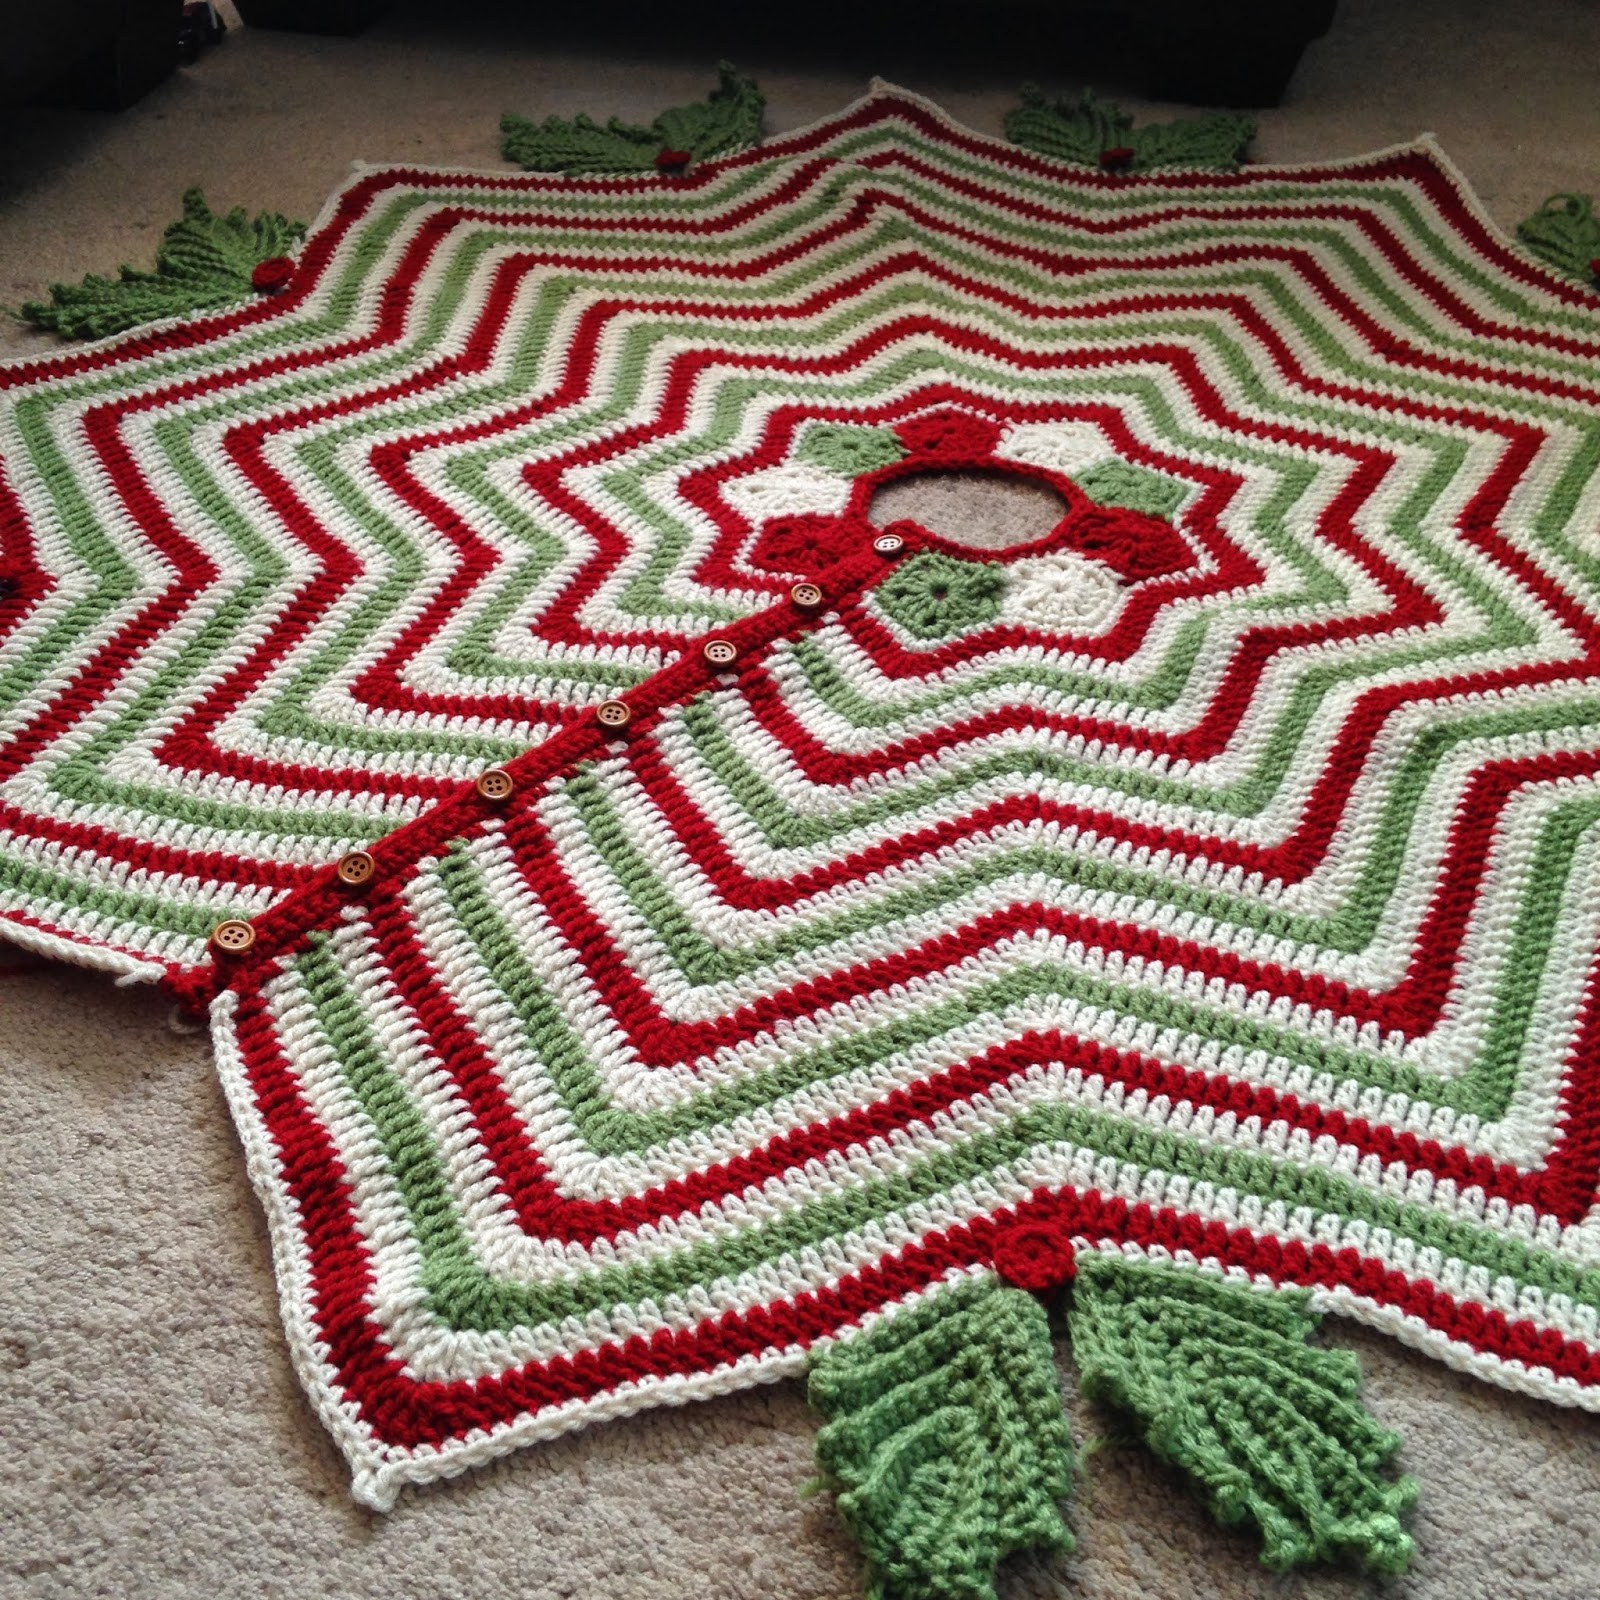 Free Crochet Tree Skirt Pattern Awesome Crochet Christmas Tree Skirt Patterns – Happy Holidays Of Marvelous 49 Models Free Crochet Tree Skirt Pattern